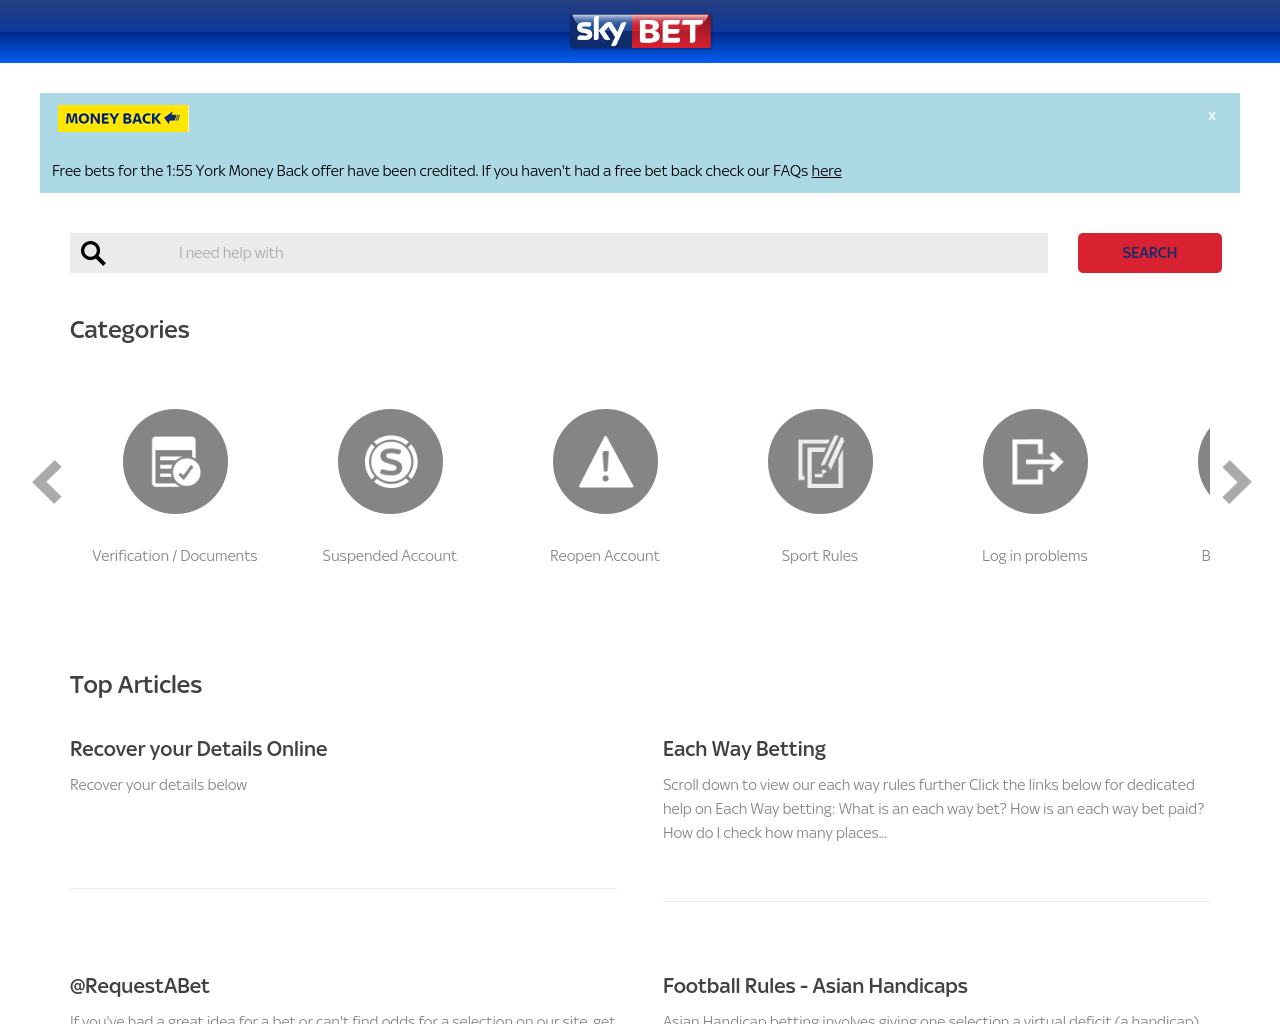 Sky-Bet-Advertising-Reviews-Pricing